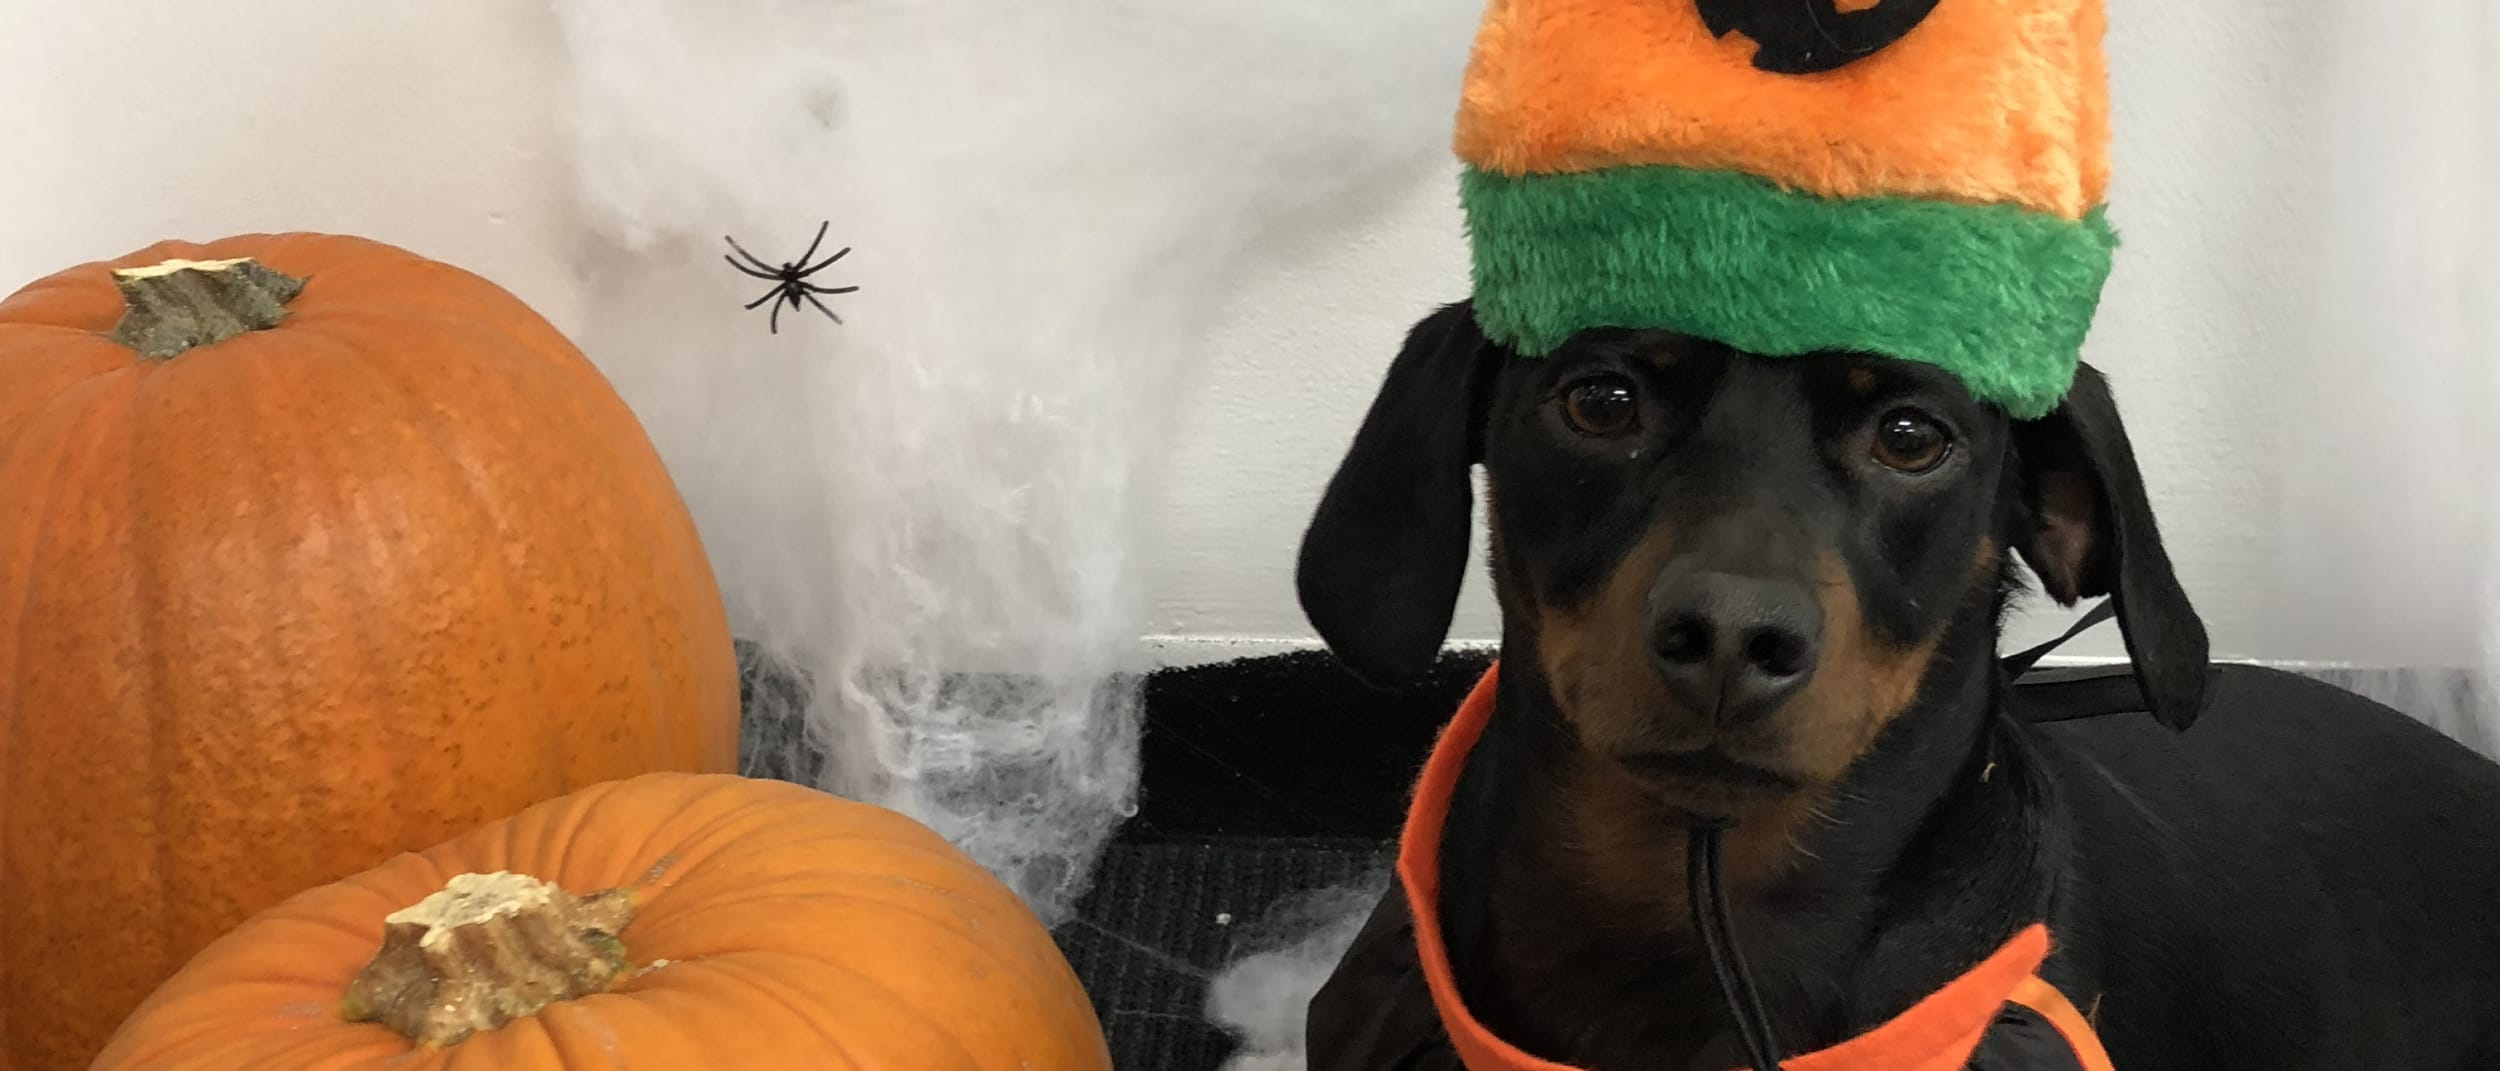 Spooky Pooch! Halloween dog dress up competition